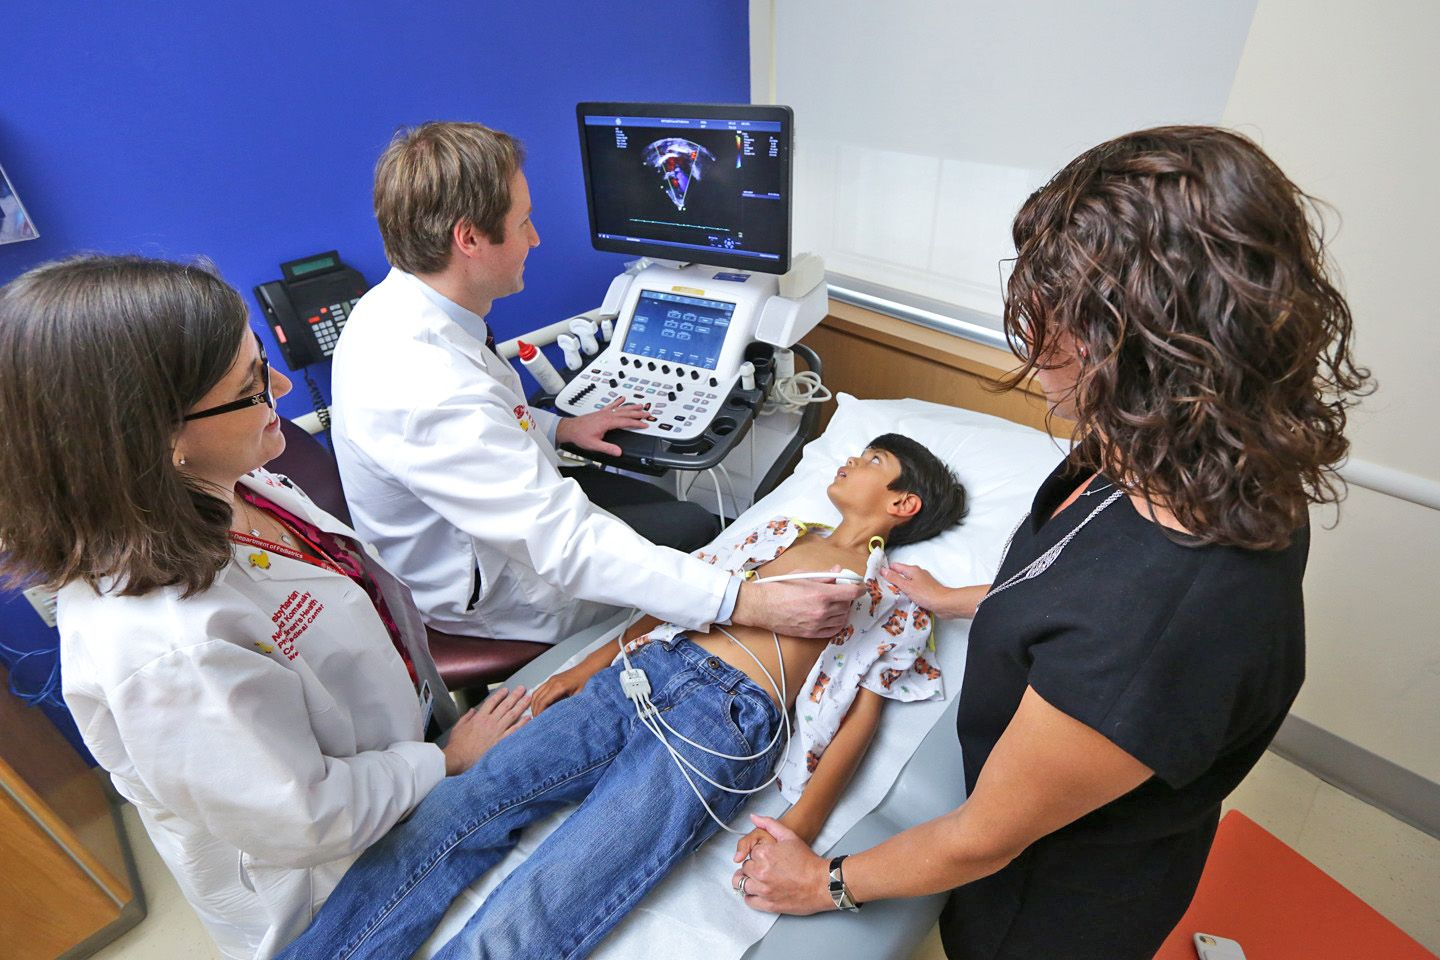 Pediatric Echocardiography Lab at Weill Cornell Medicine